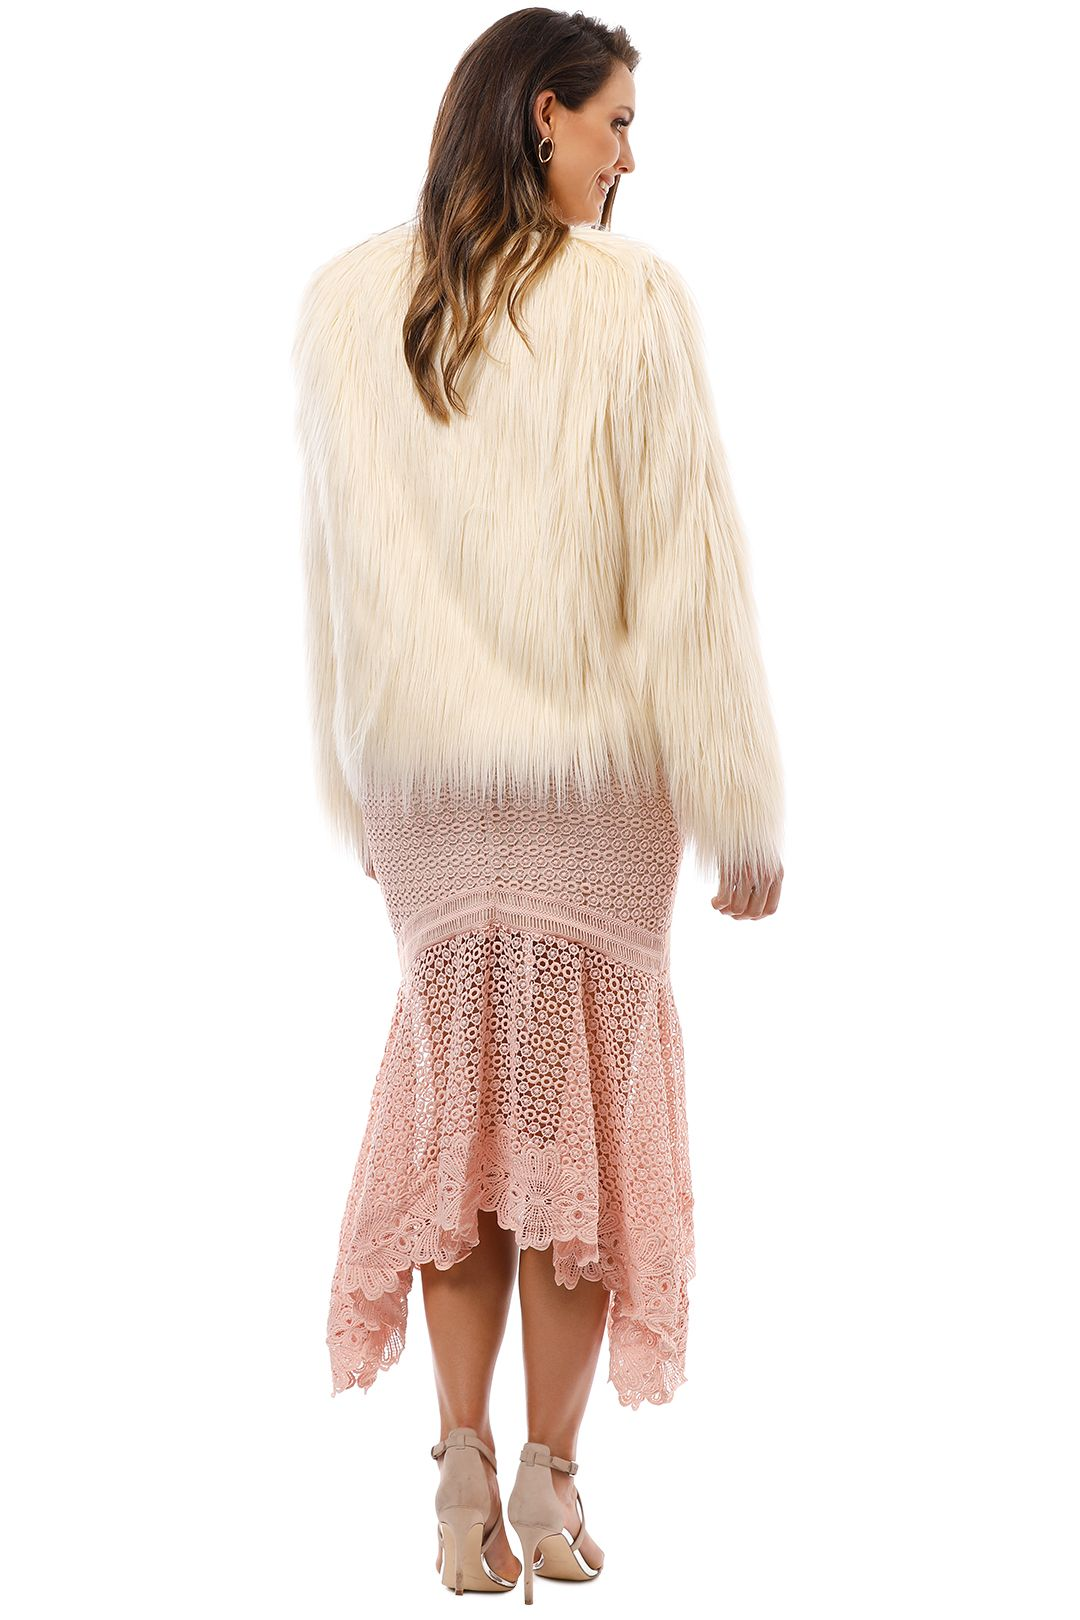 Unreal Fur - Unreal Dream Jacket - Ivory - Back